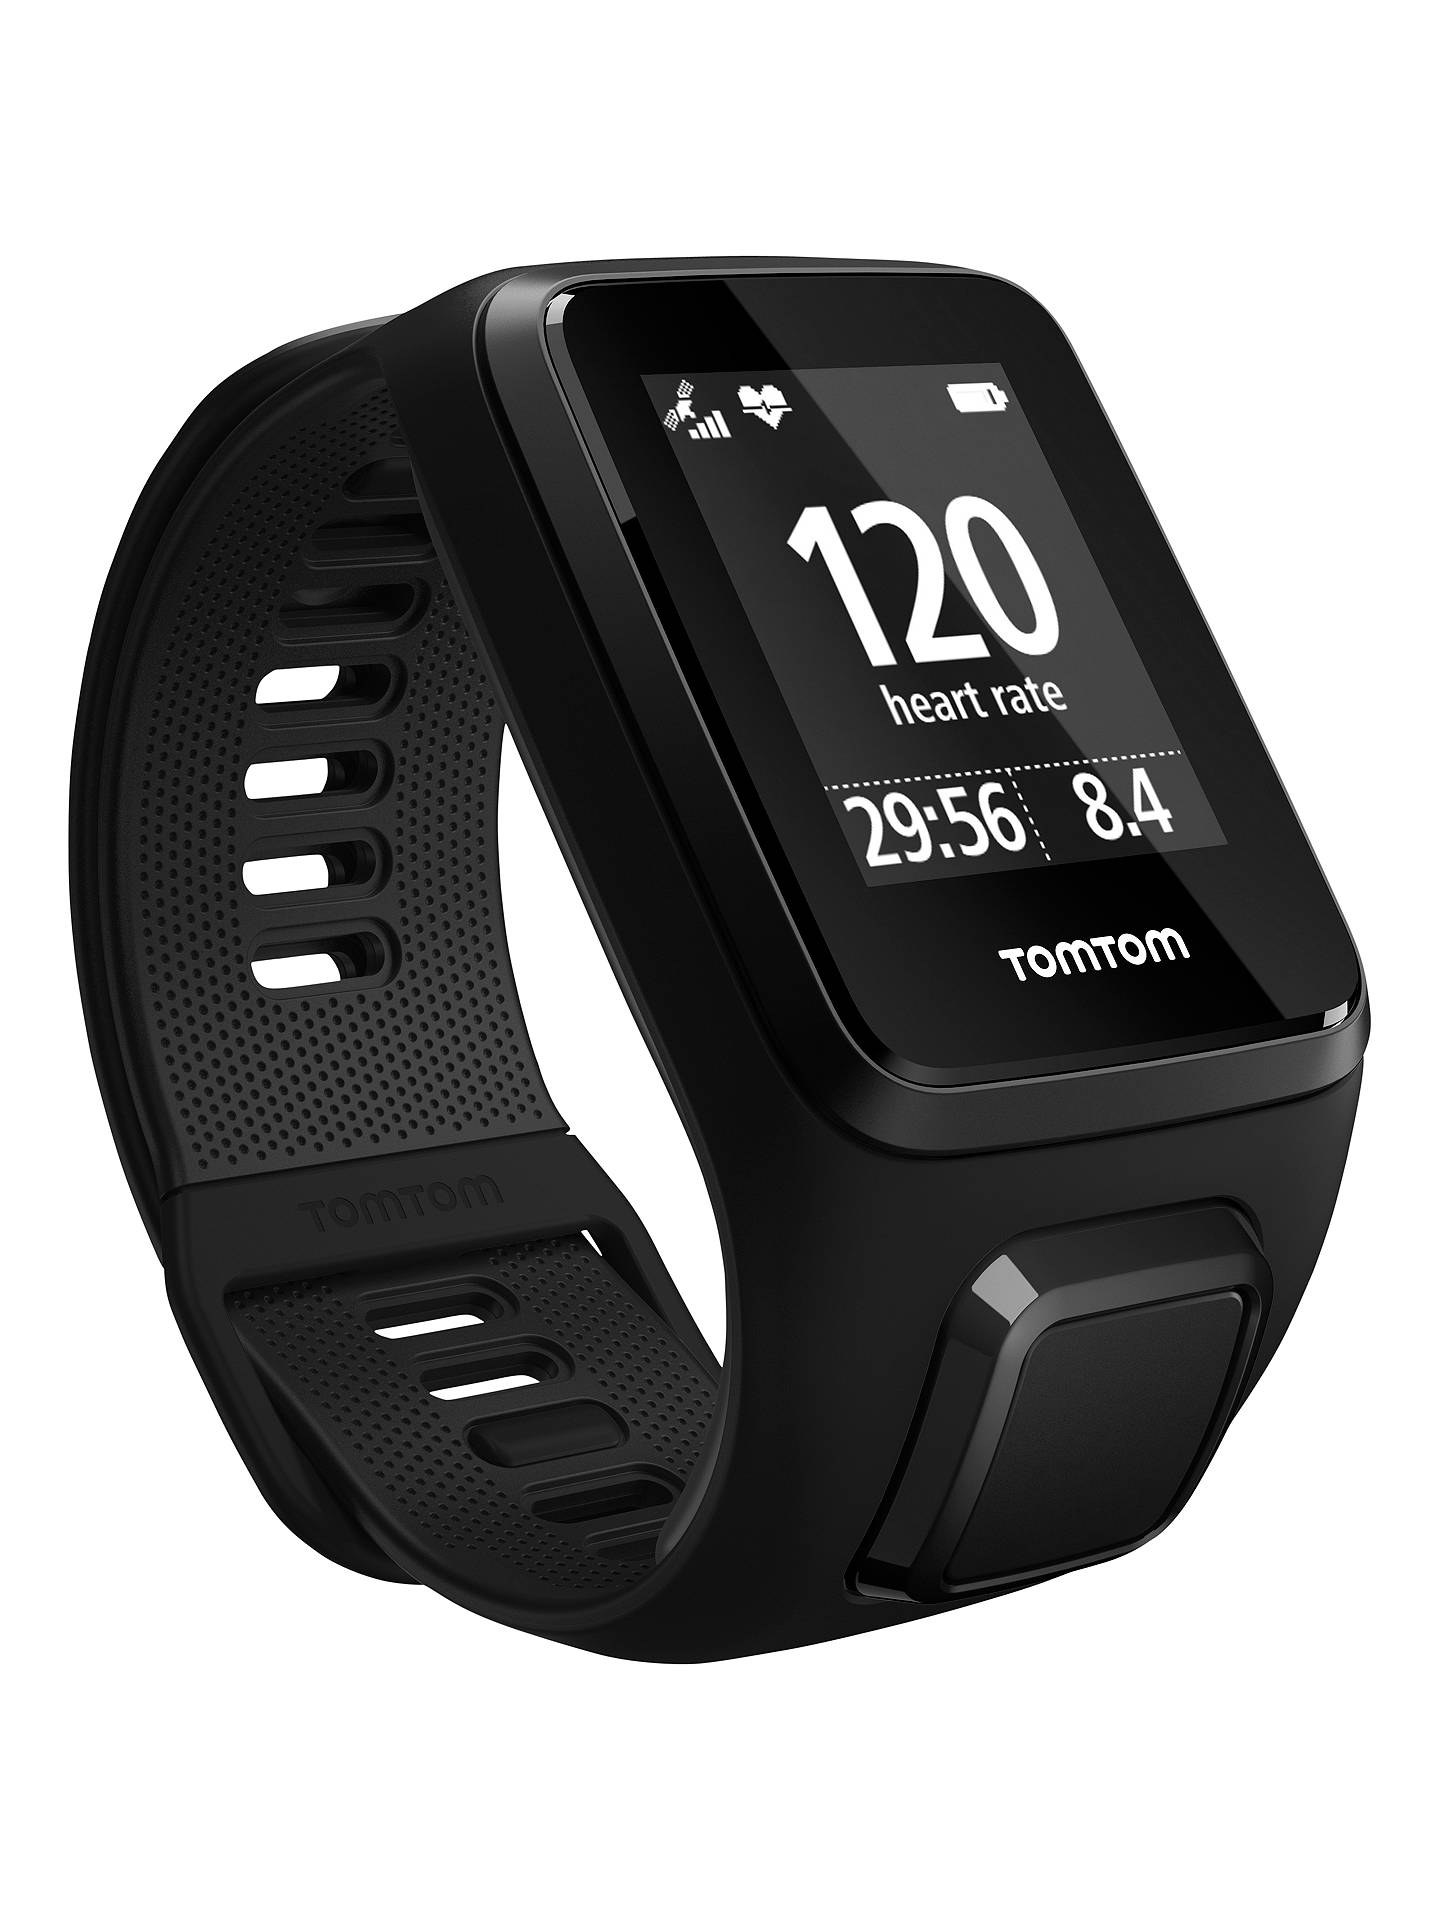 Tomtom Spark 3 Cardio Music Gps Fitness Activity Watch With Built Go Charger Wiring Diagram Buytomtom In Heart Rate